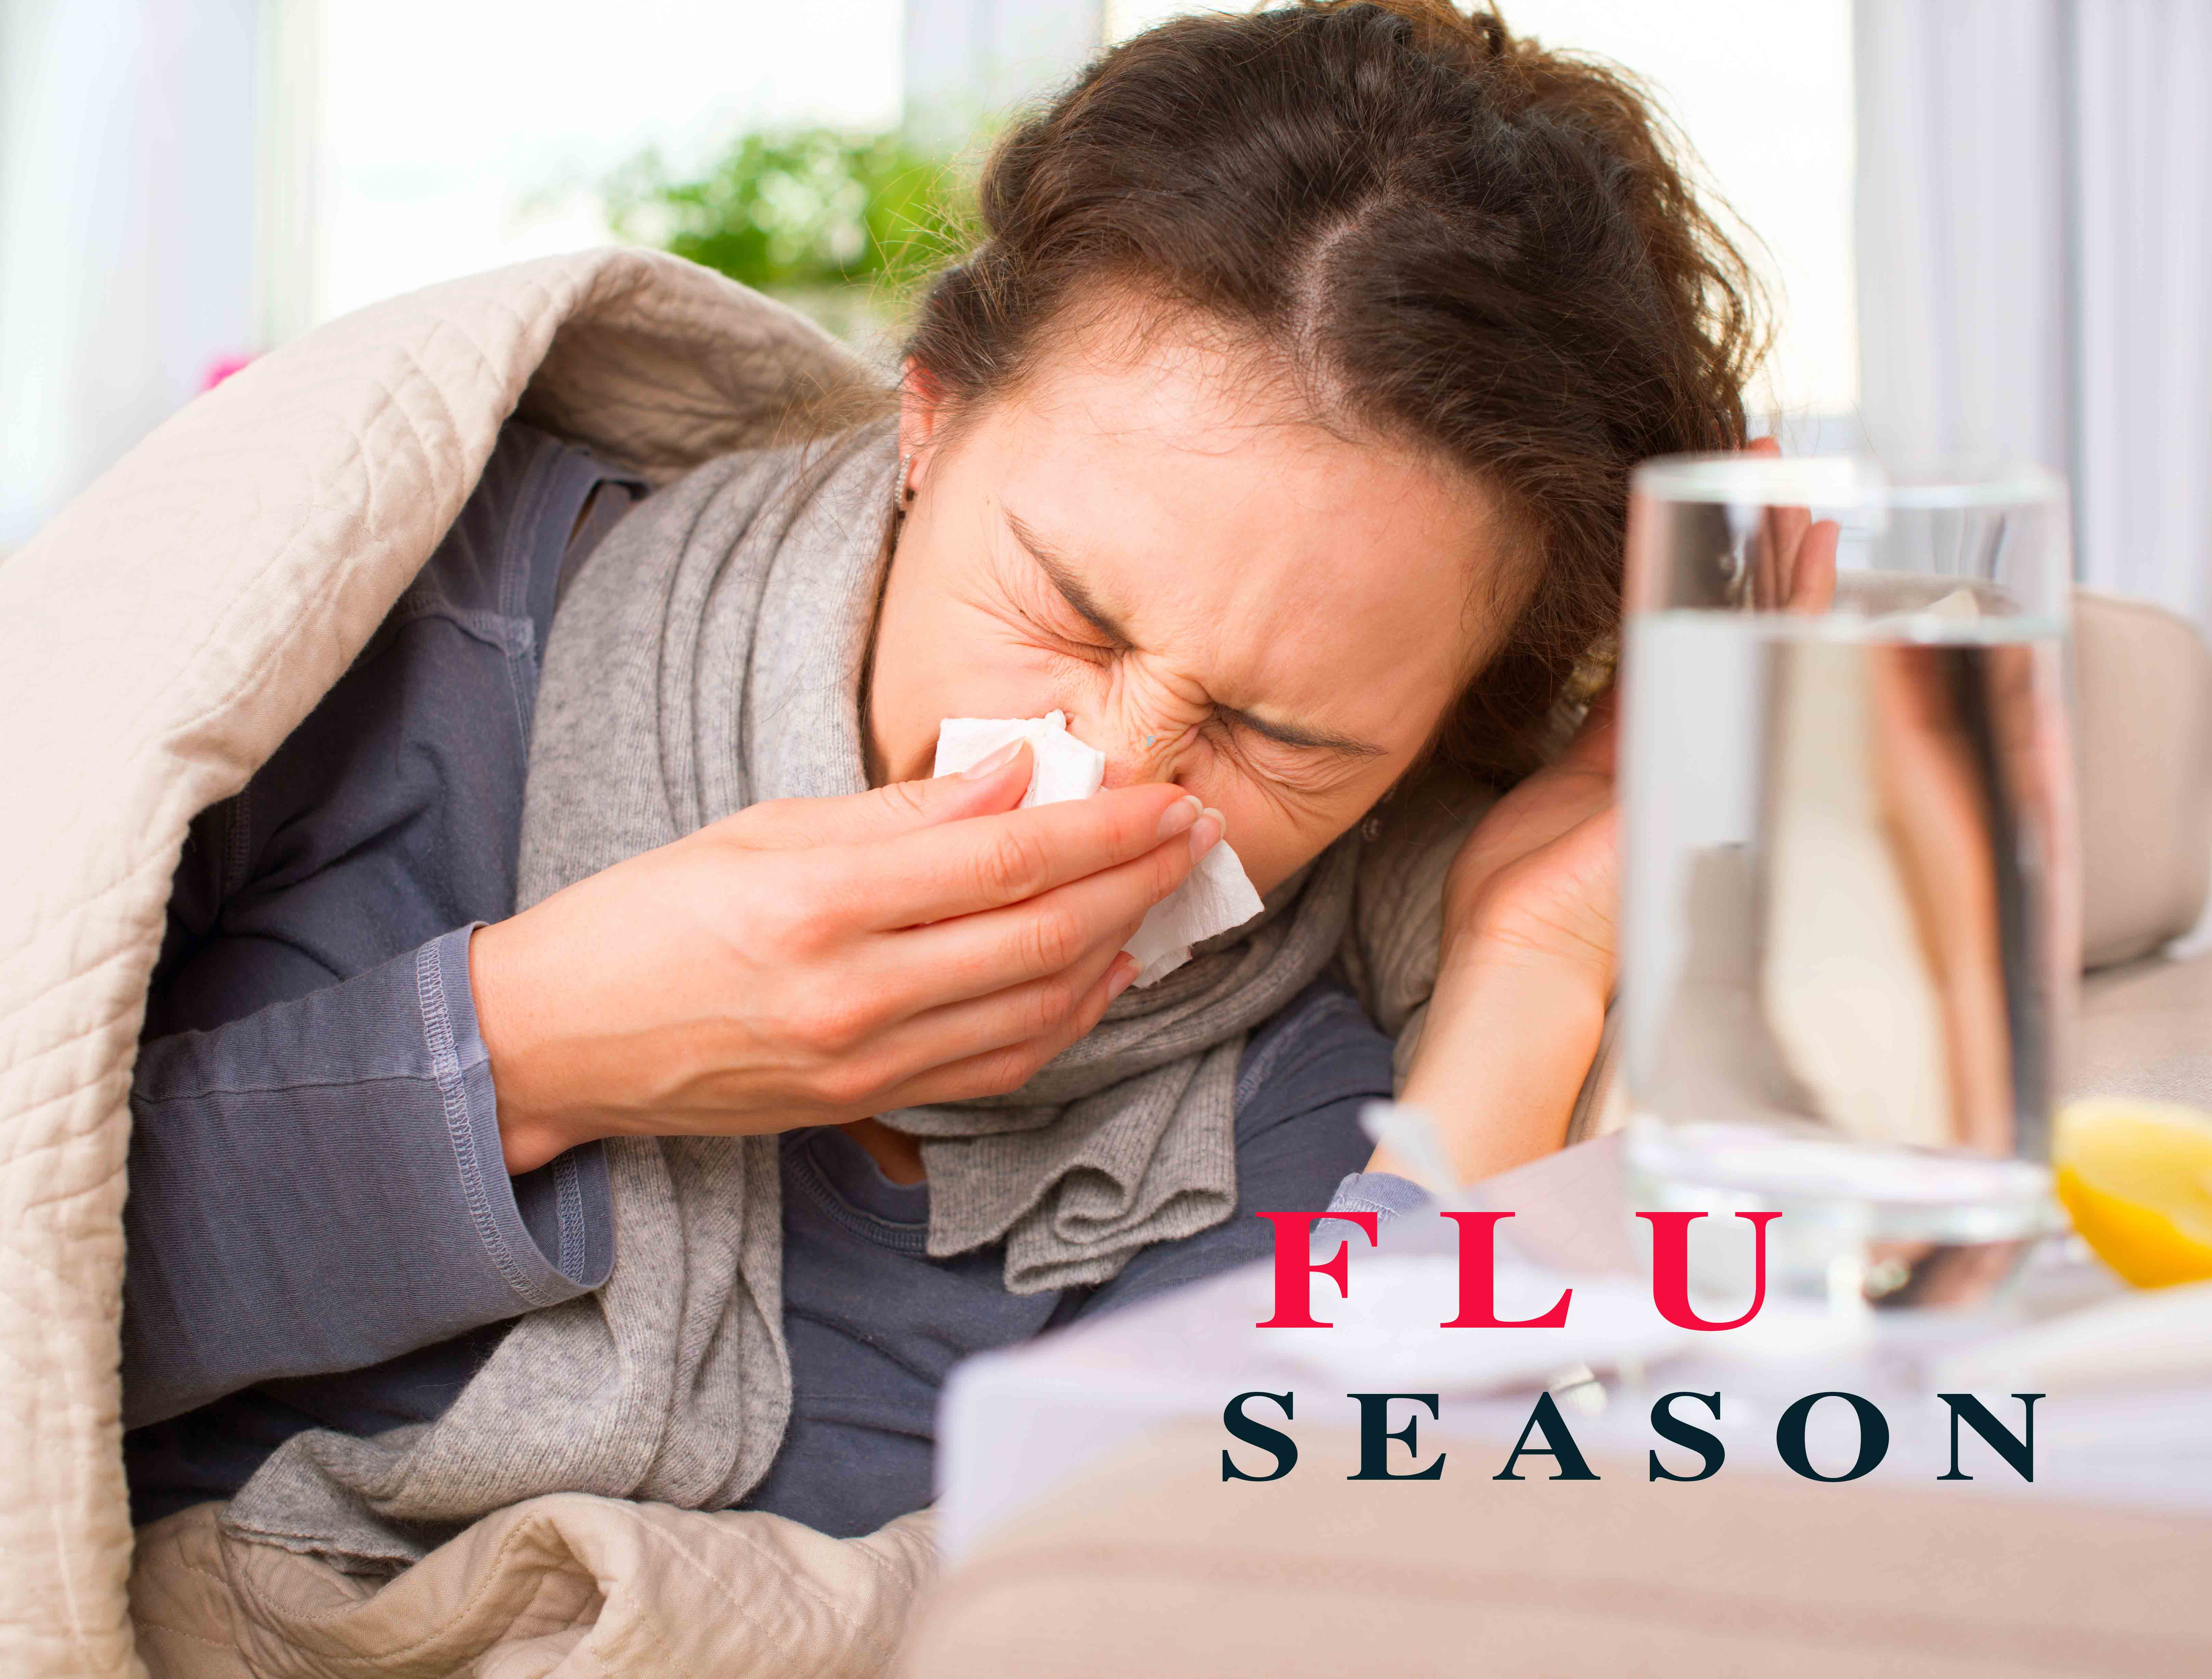 It's flu season: 5 things you need to know about the flu and flu shots